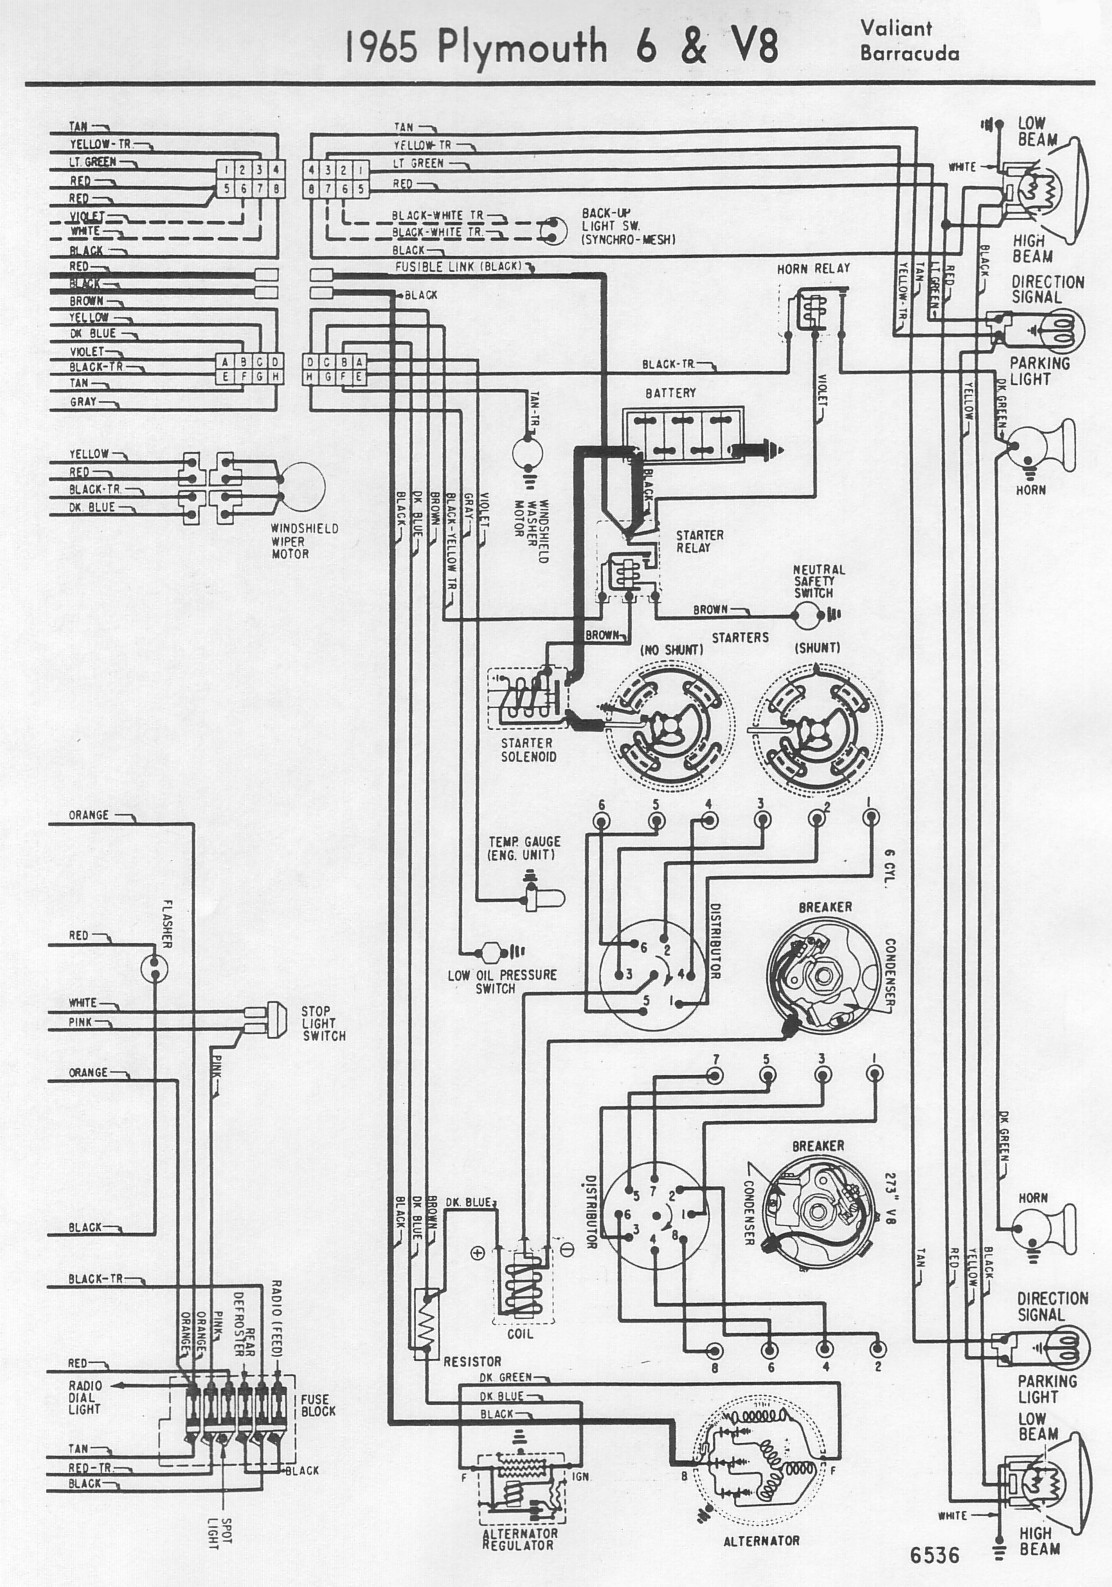 1972 Plymouth Barracuda Wiring Diagram Harness Schematics 1939 Ford Truck 1965 Schematic Another Rh Benpaterson Co Uk Dodge